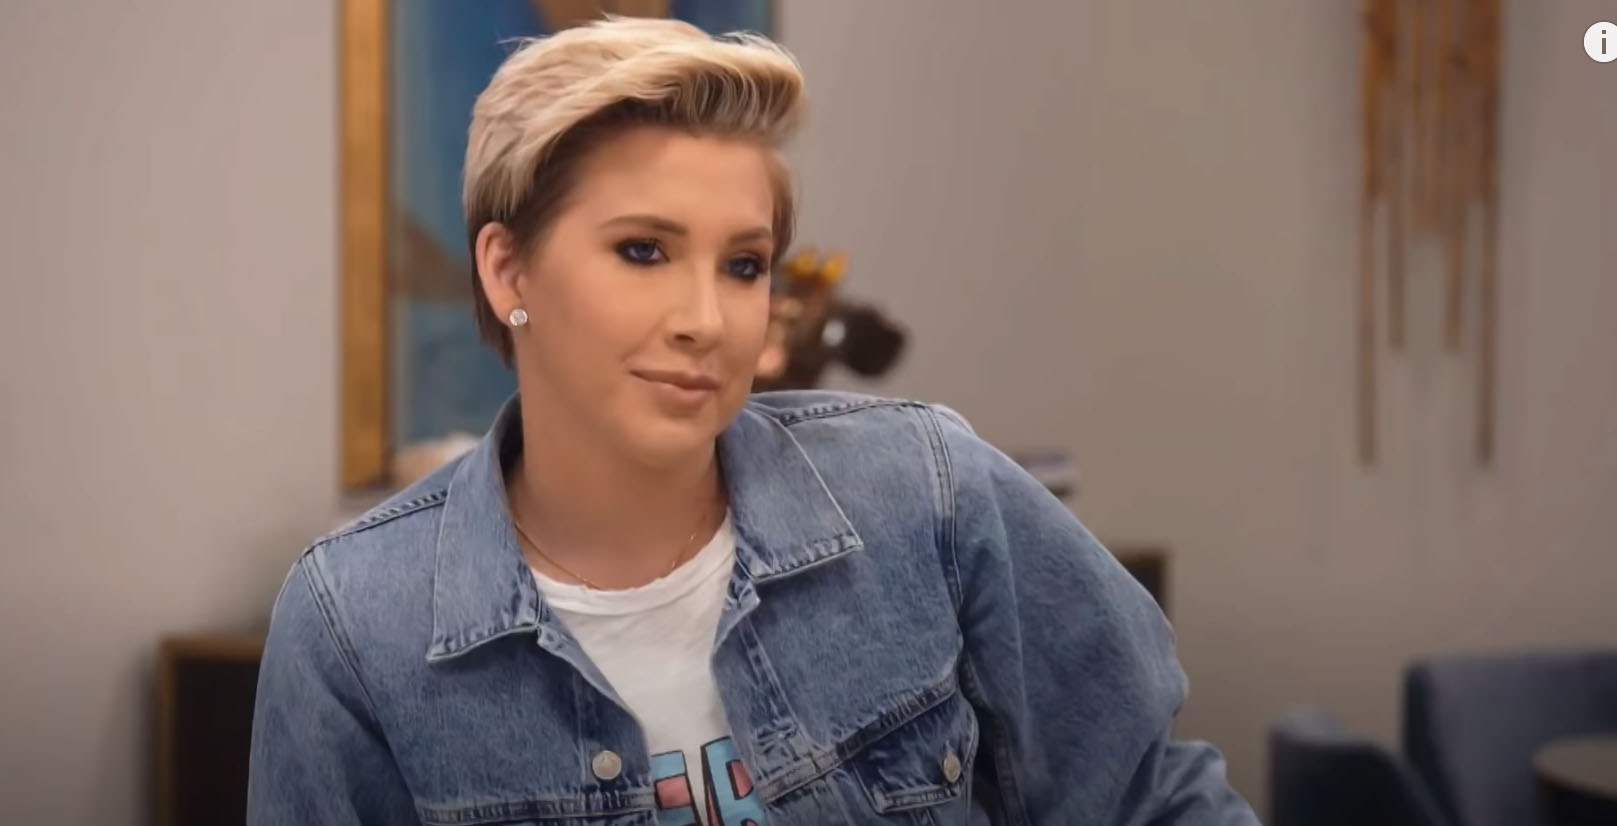 Chrisley Knows Best Savannah Chrisley nude